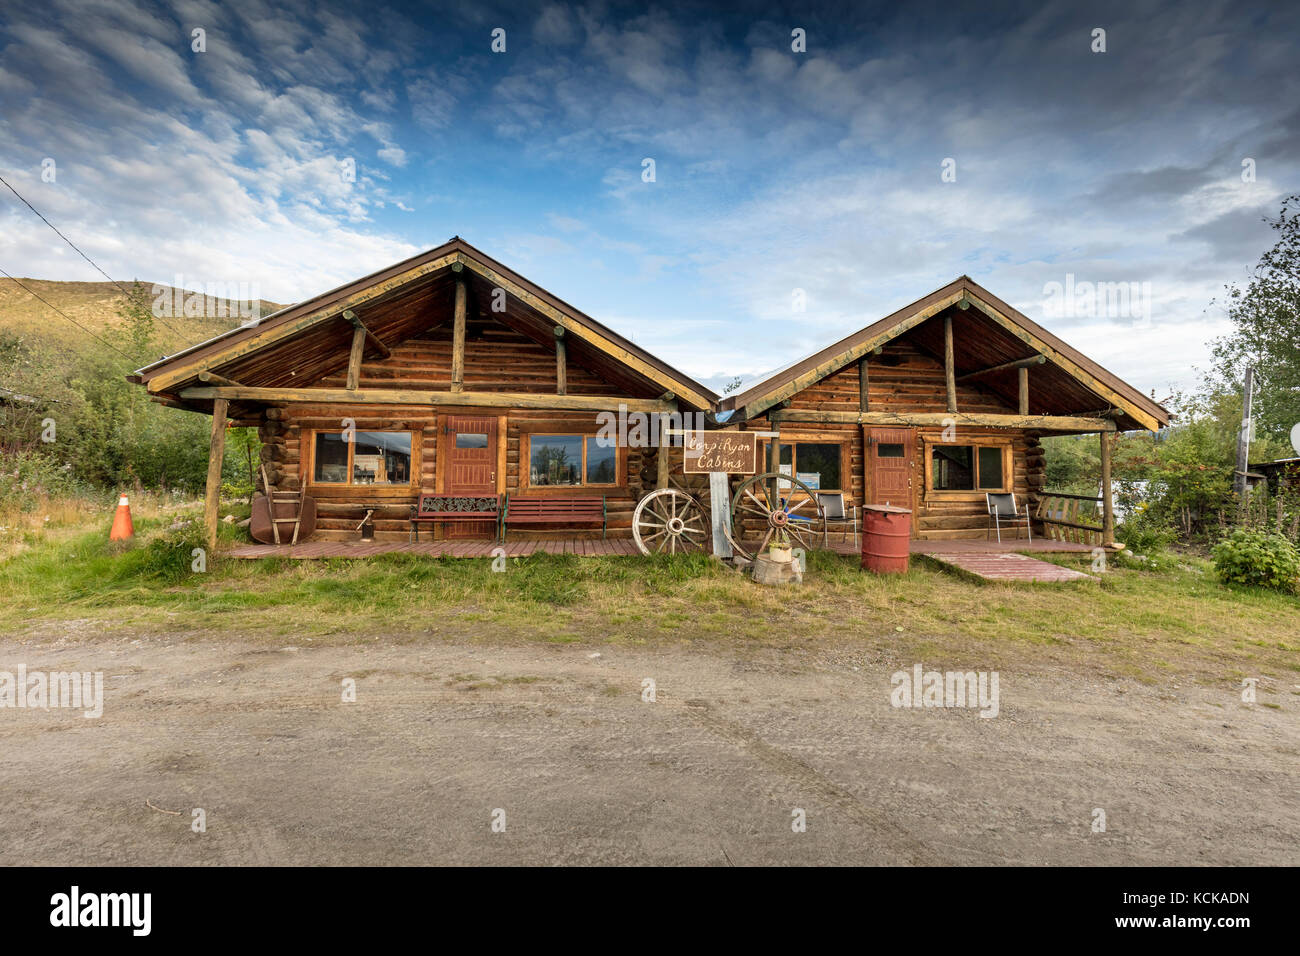 The Duplex, part of the Keno City Historical Buildings Walking Tour in Keno City, Yukon, Canada - Stock Image